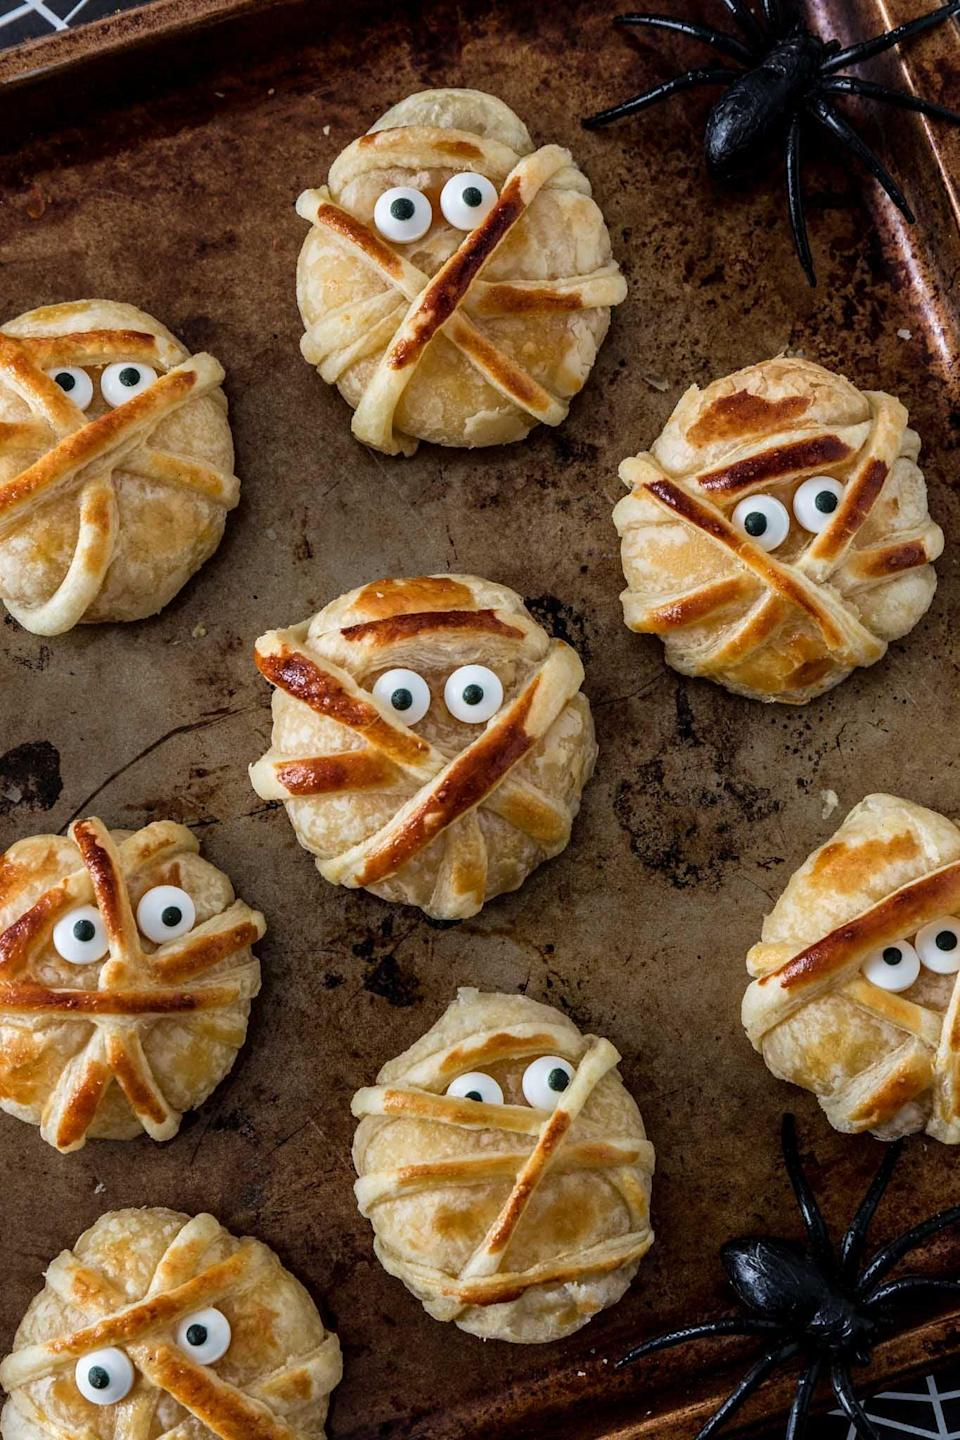 "<p>More cheese, please! These bite-size mummies will fill your plate with all the cheese you could ever dream of. Made with puff pastry and mini Babybel cheese, these will be a hit. Add little eyeballs to make them complete.</p> <p><strong>Get the recipe:</strong> <a href=""https://www.oliviascuisine.com/baked-cheese-mummies/"" class=""link rapid-noclick-resp"" rel=""nofollow noopener"" target=""_blank"" data-ylk=""slk:baked cheese mummies"">baked cheese mummies</a></p>"